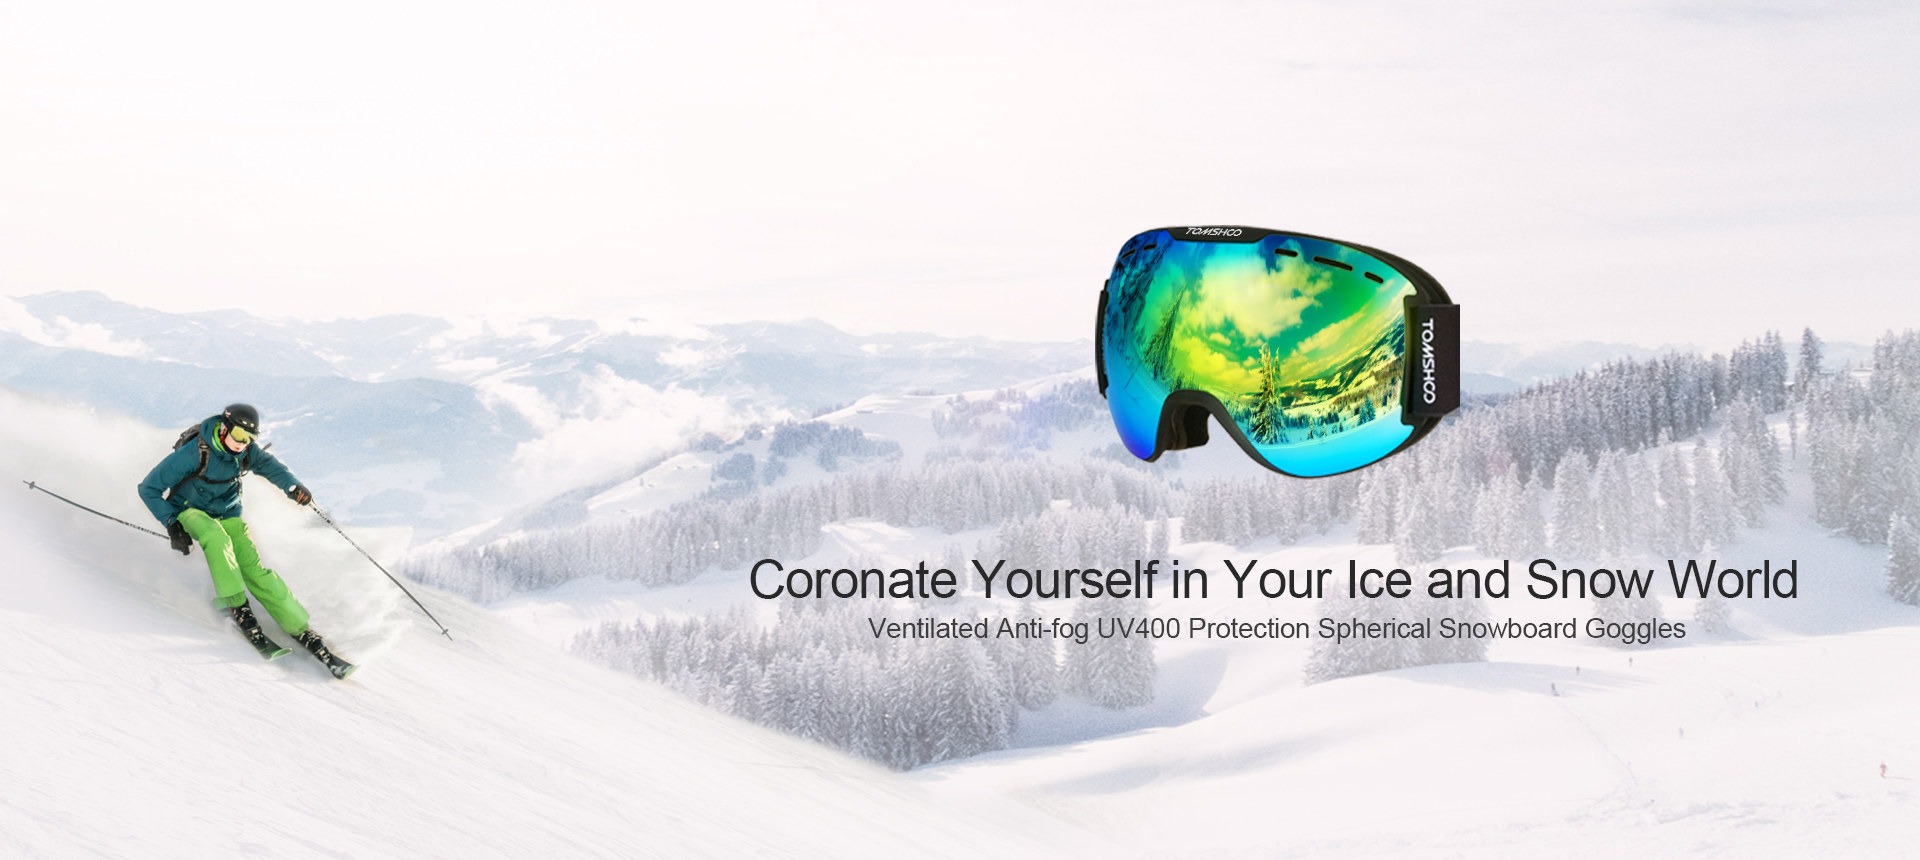 Ventilated Anti-fog Snowboard Goggles